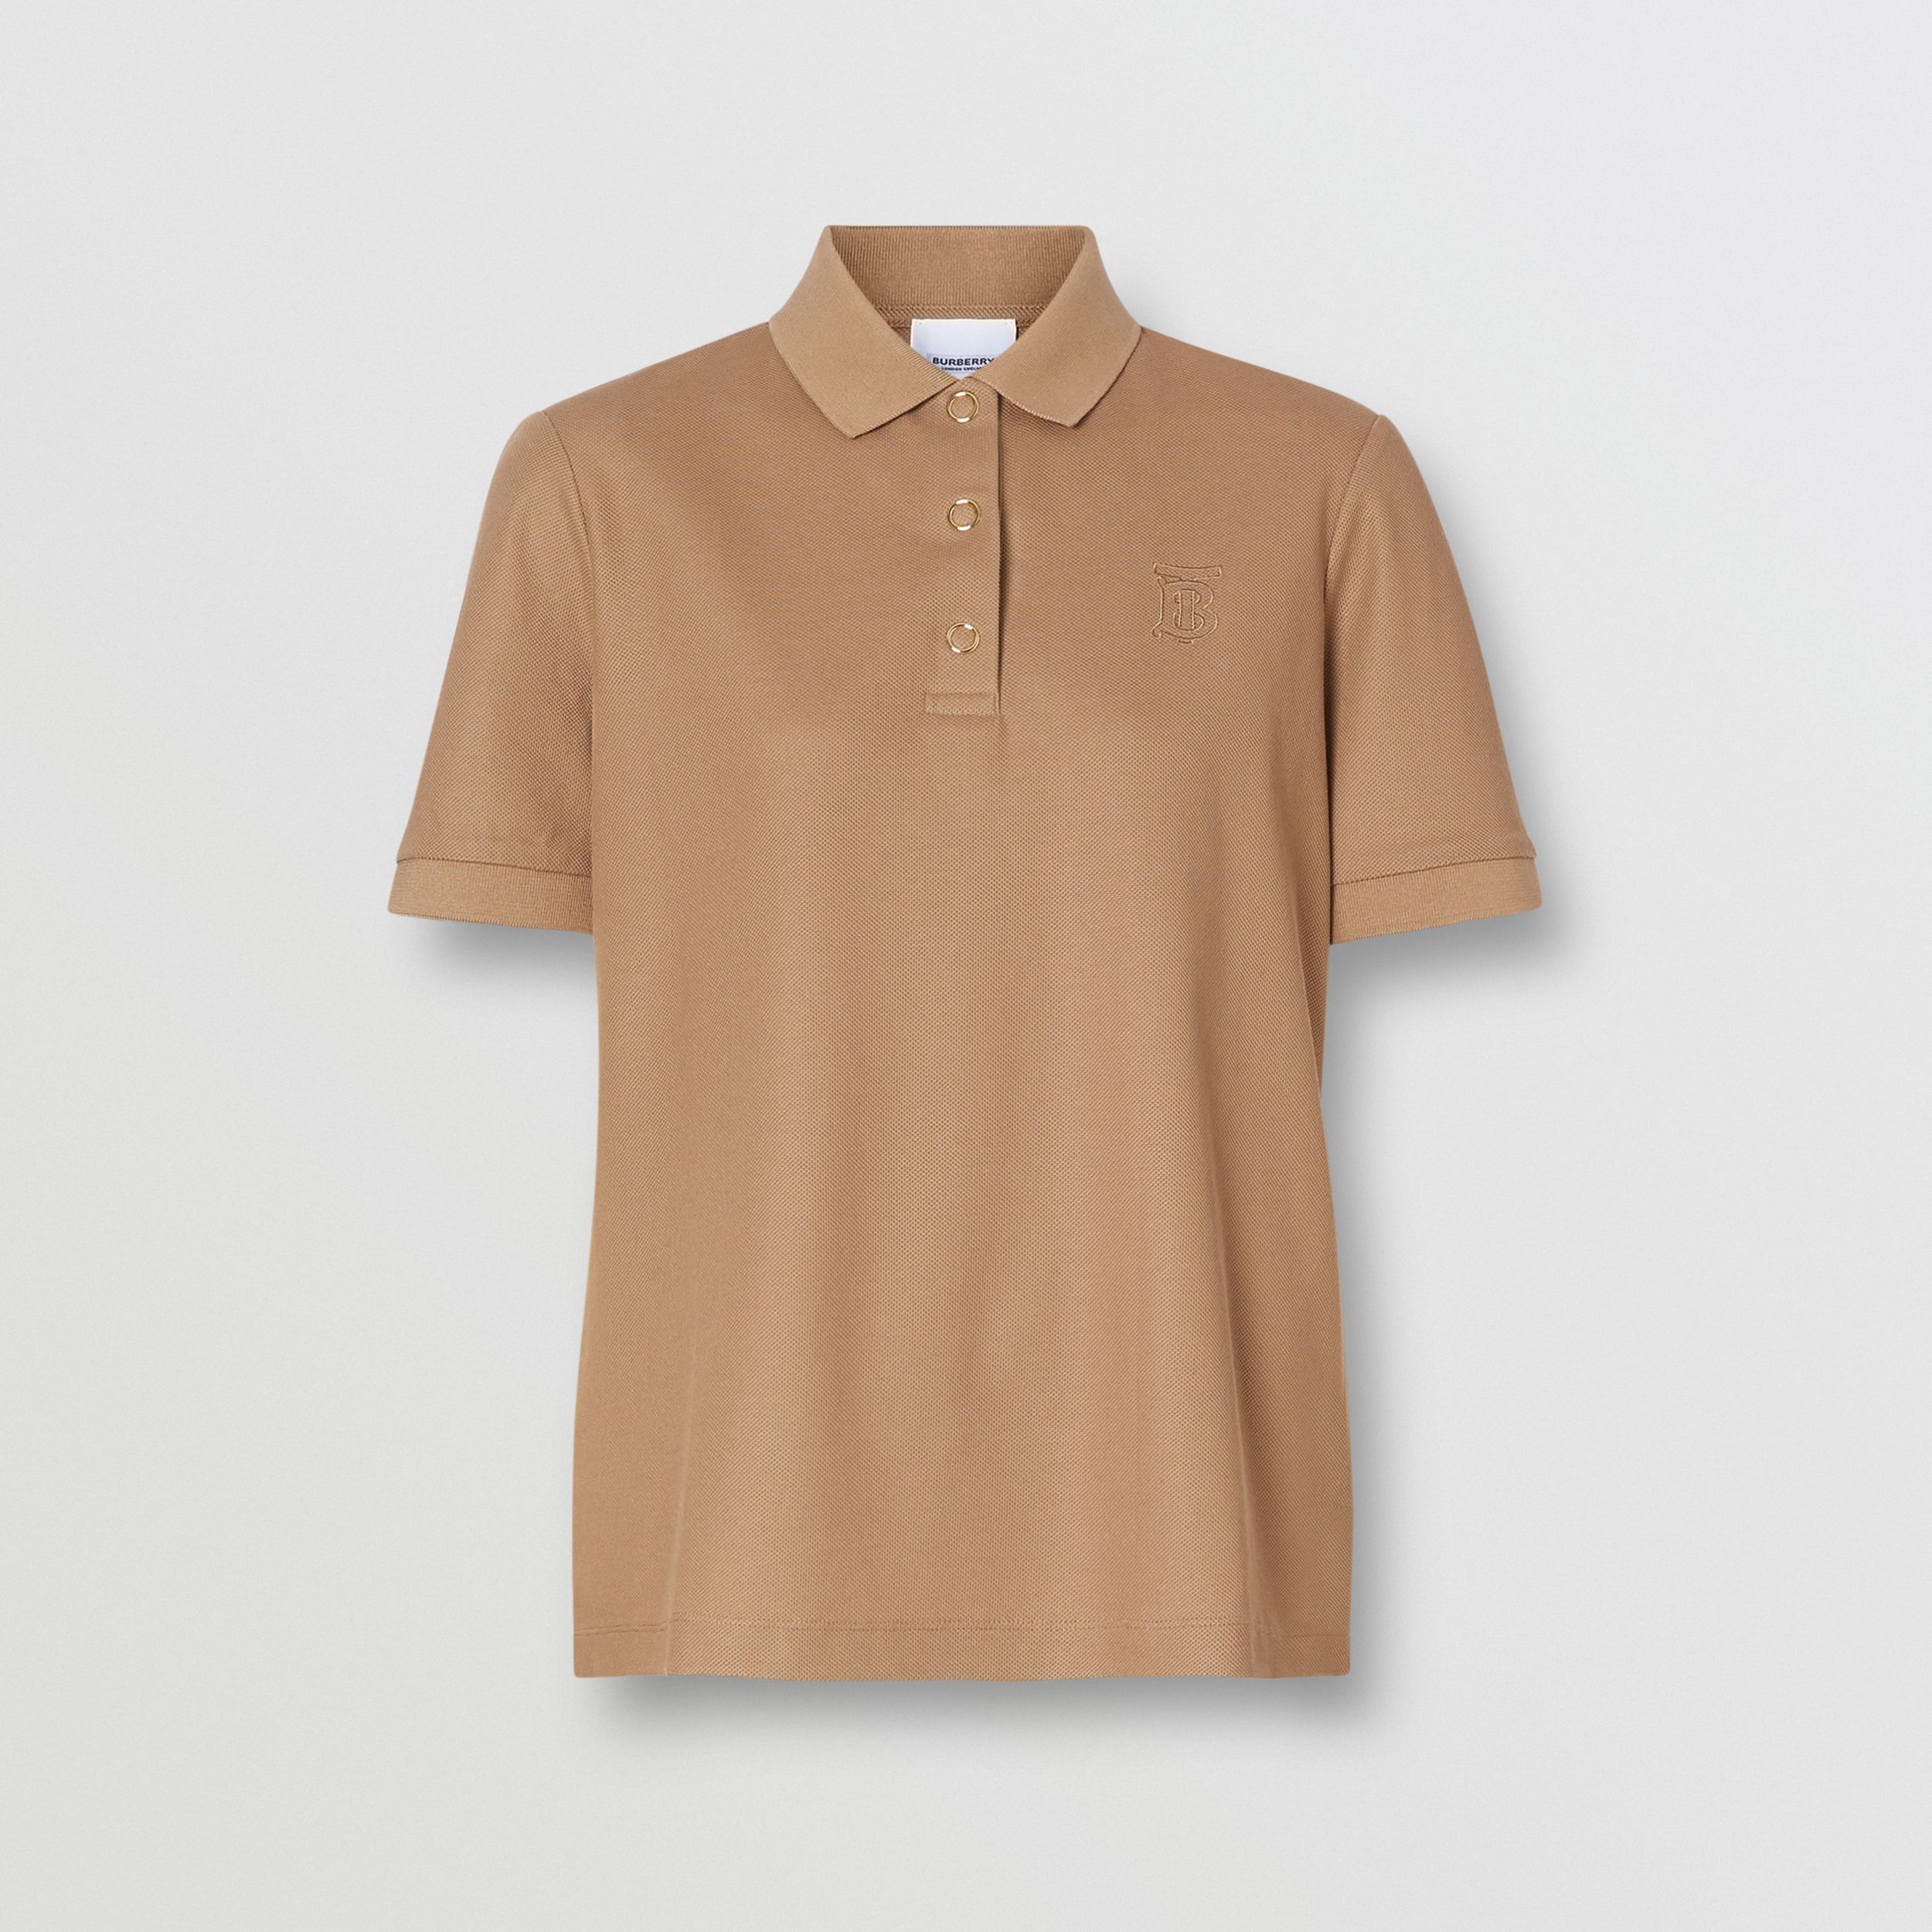 Monogram Motif Cotton Piqué Polo Shirt in Camel - Women | Burberry Singapore - 4